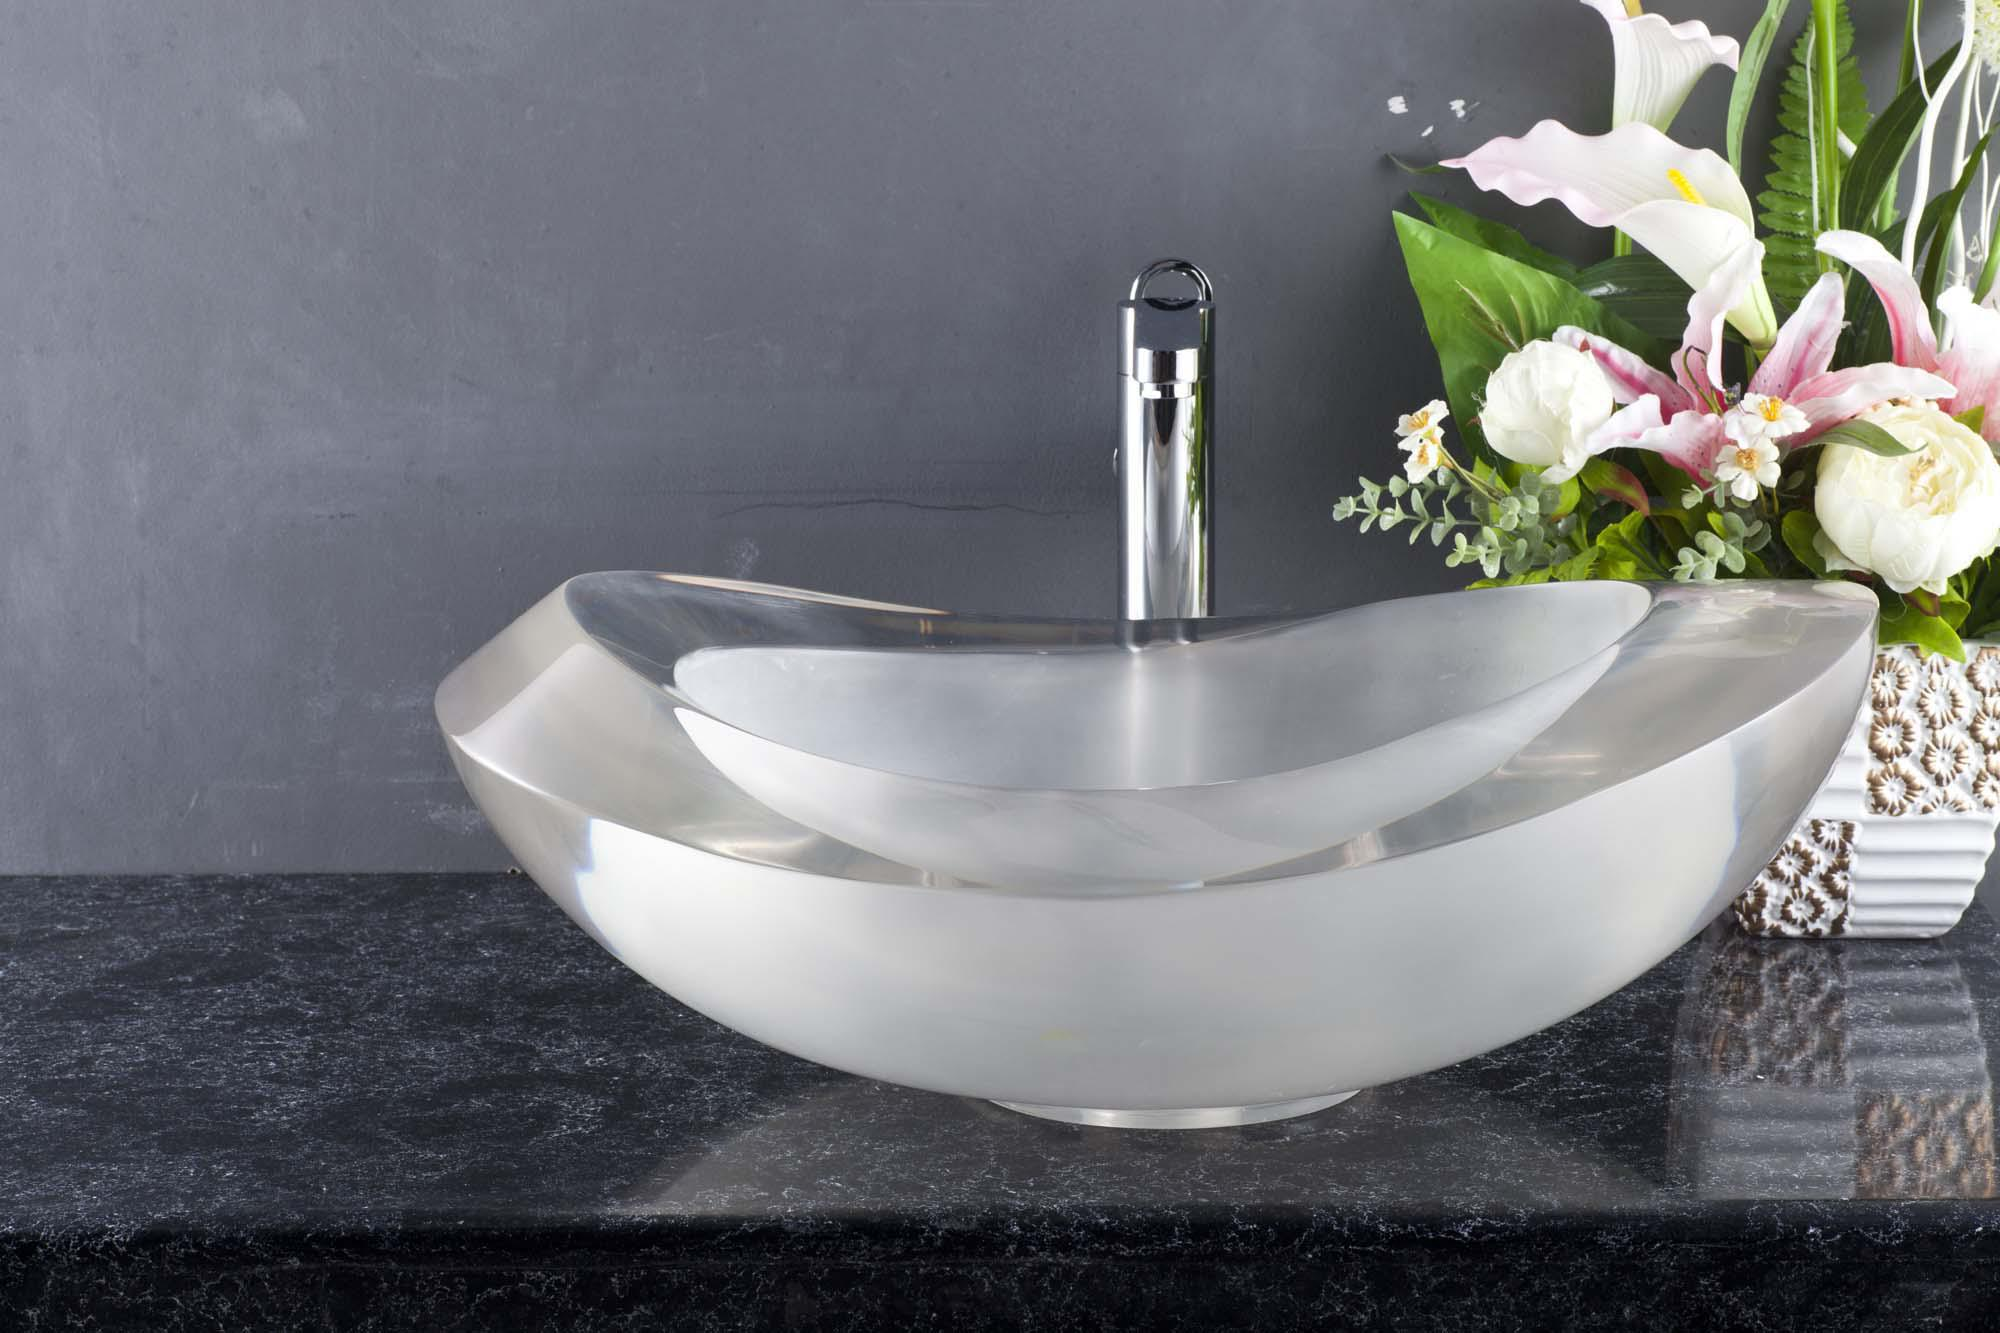 Elegant European Style Translucent Resin Bathroom Sinks Wash Basinsitem AX1003 ...